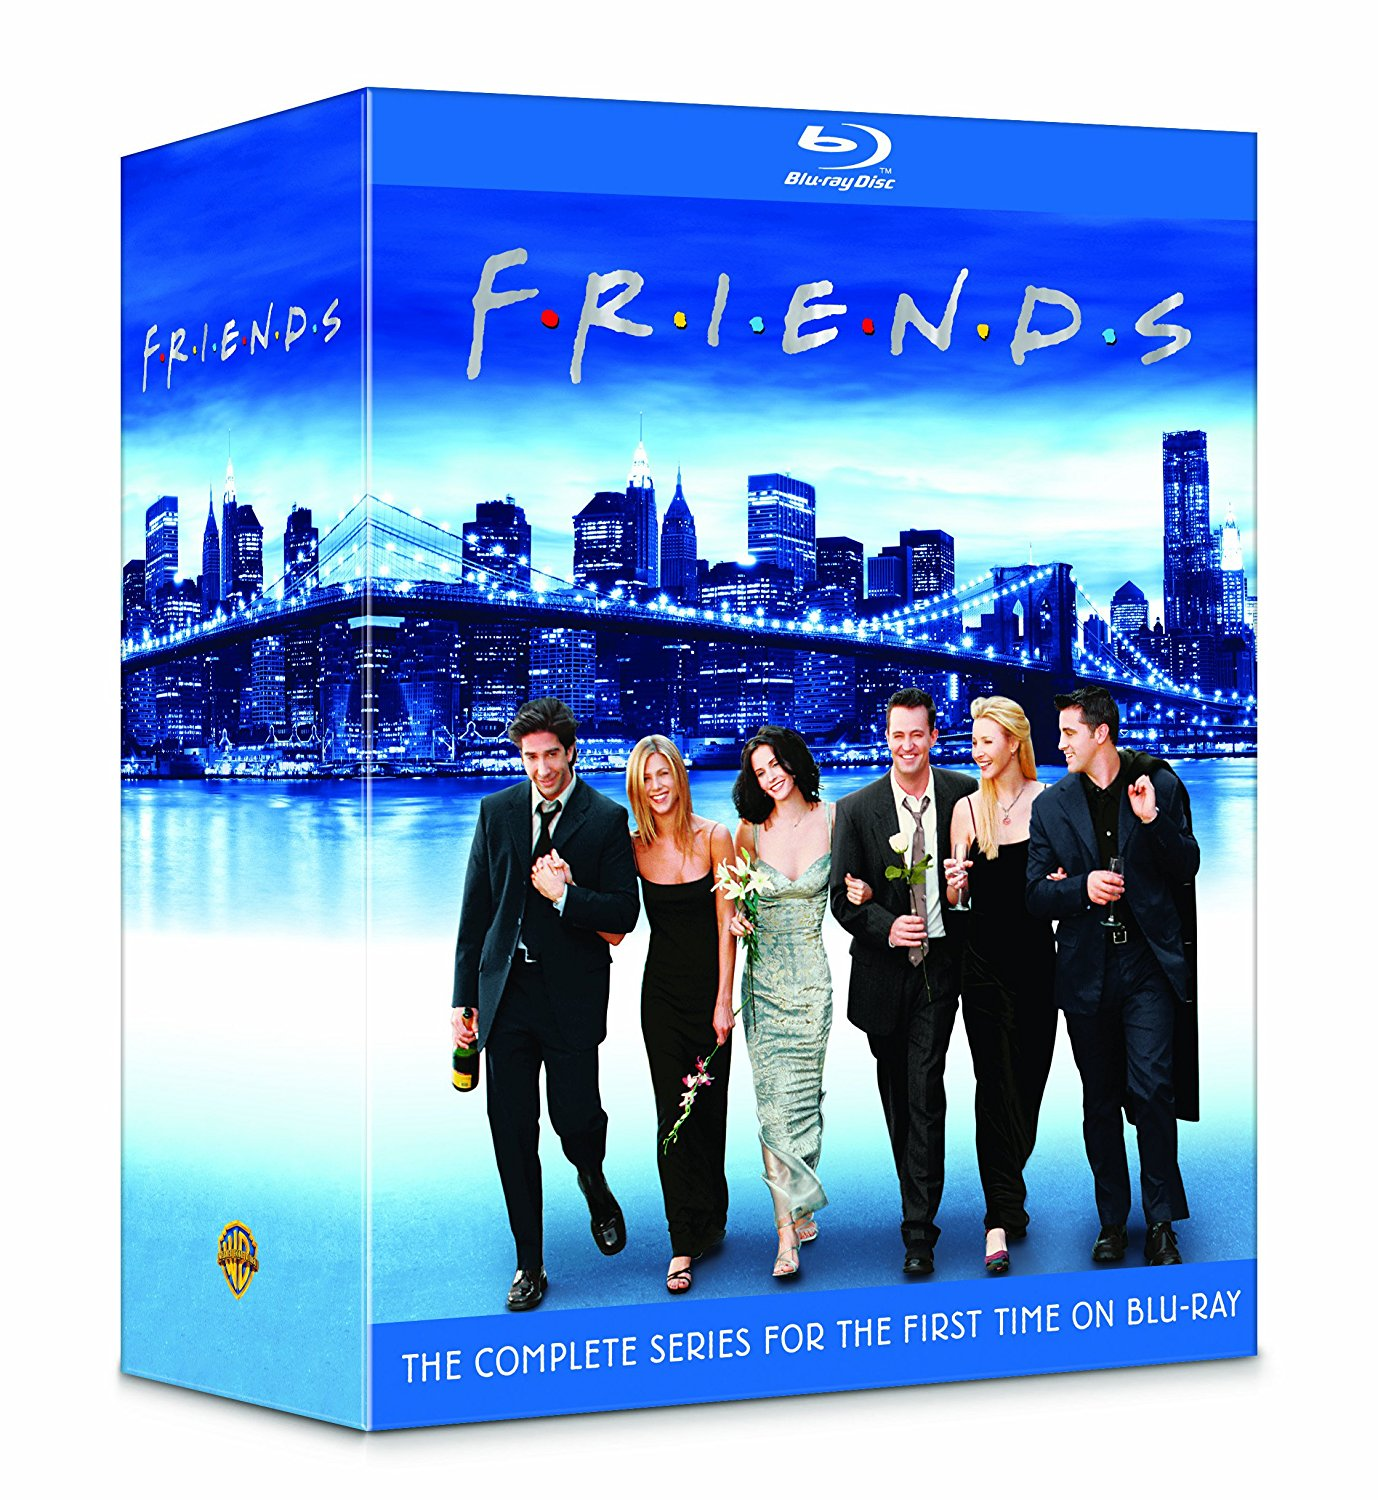 4-everyone you know is getting engaged-friends dvds